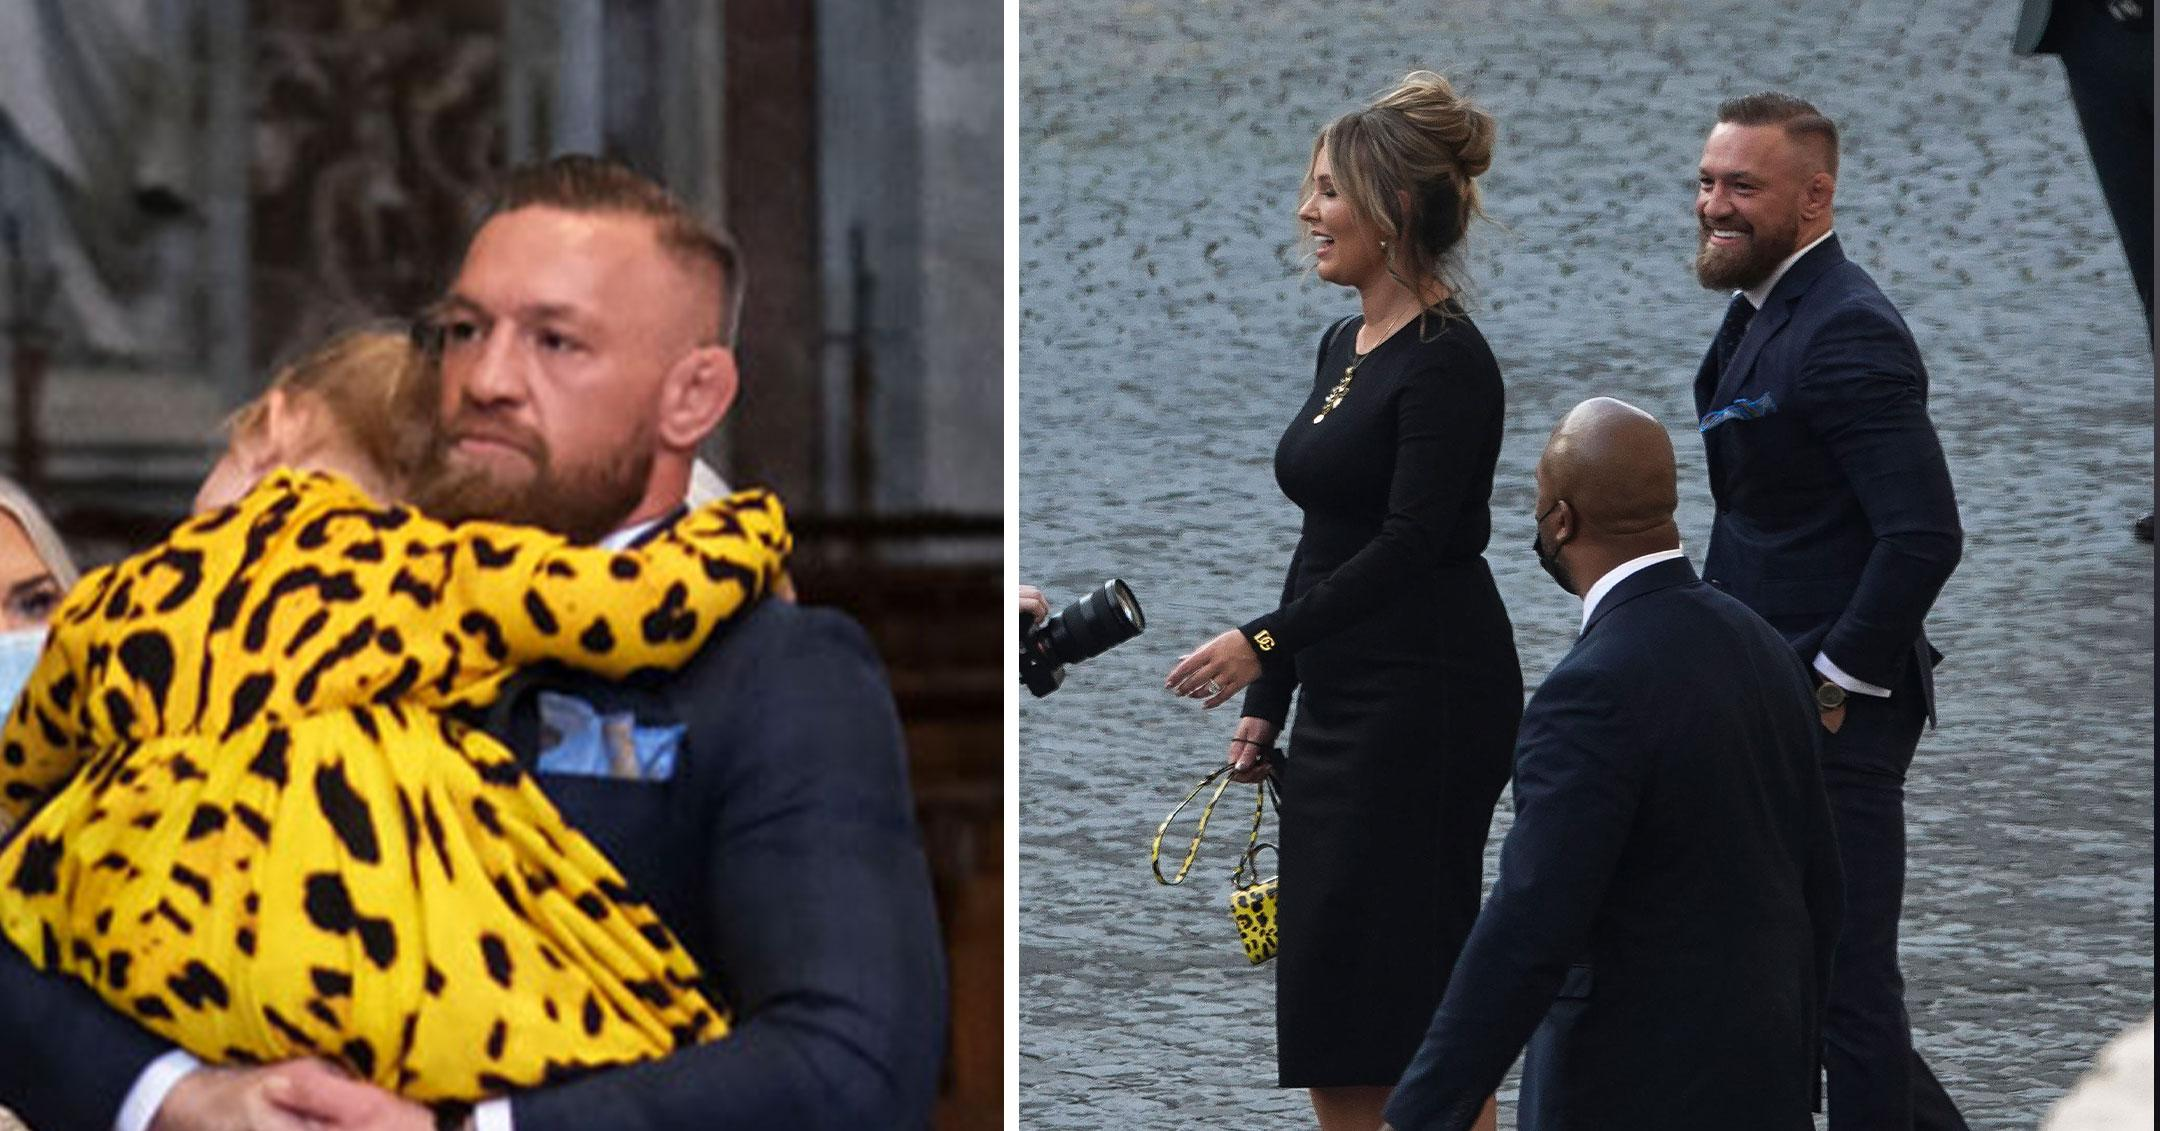 conor mcgregor and wife are spotted inside the vatican for the christening of son pp